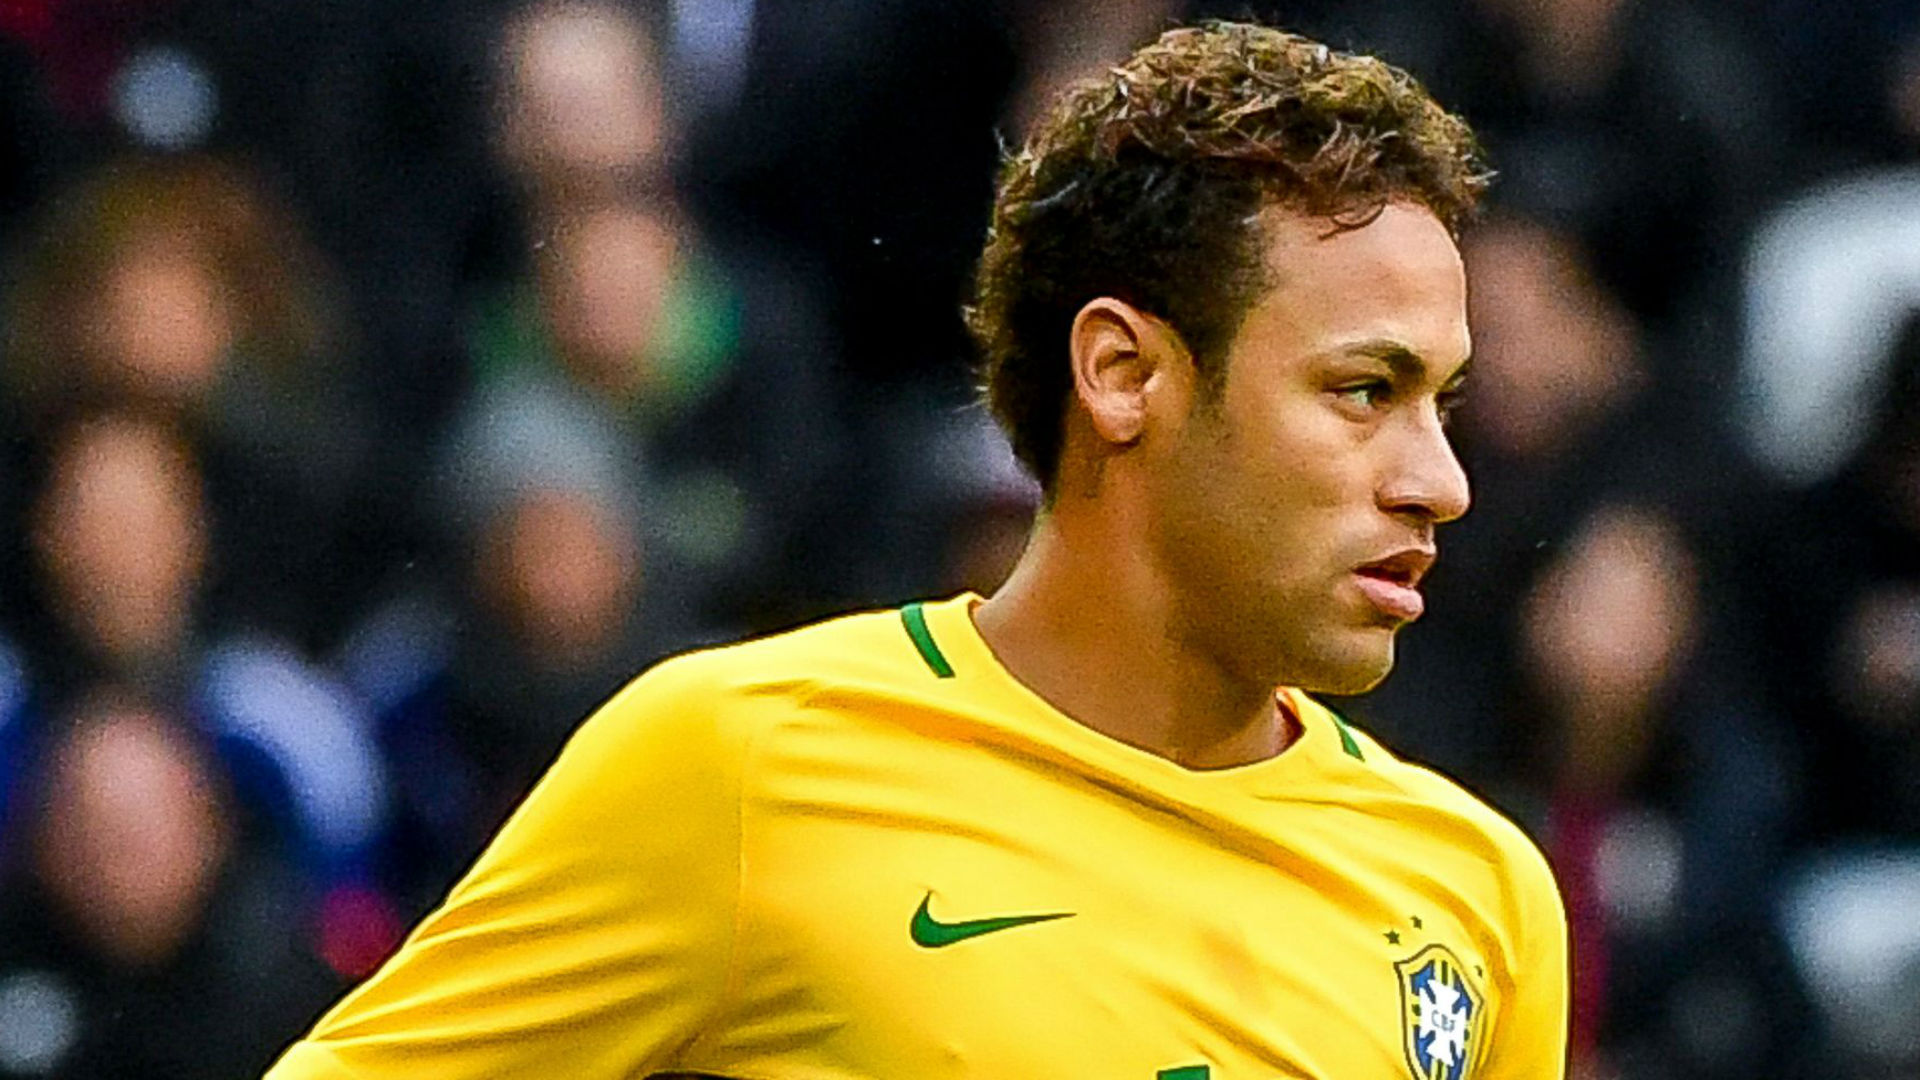 England vs Brazil: Southgate speaks about Neymar's worth